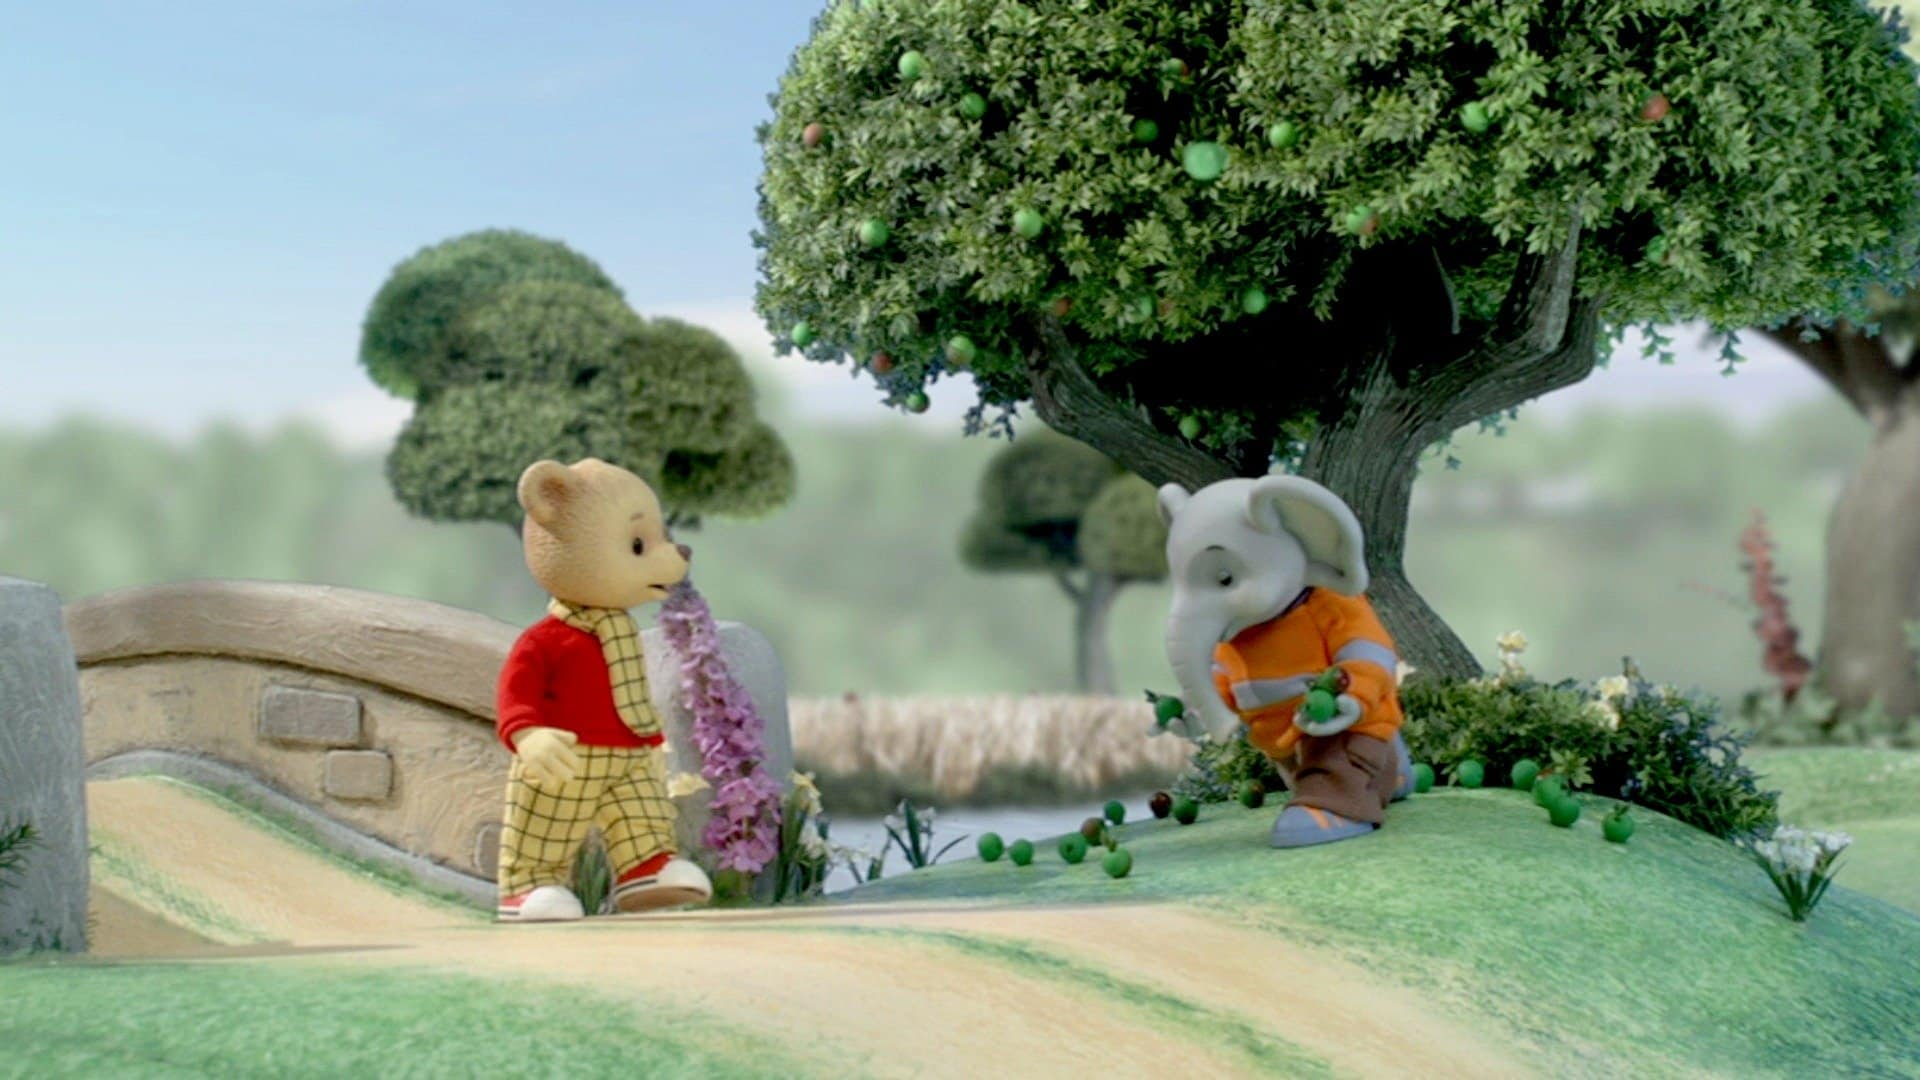 Rupert and the Apple River